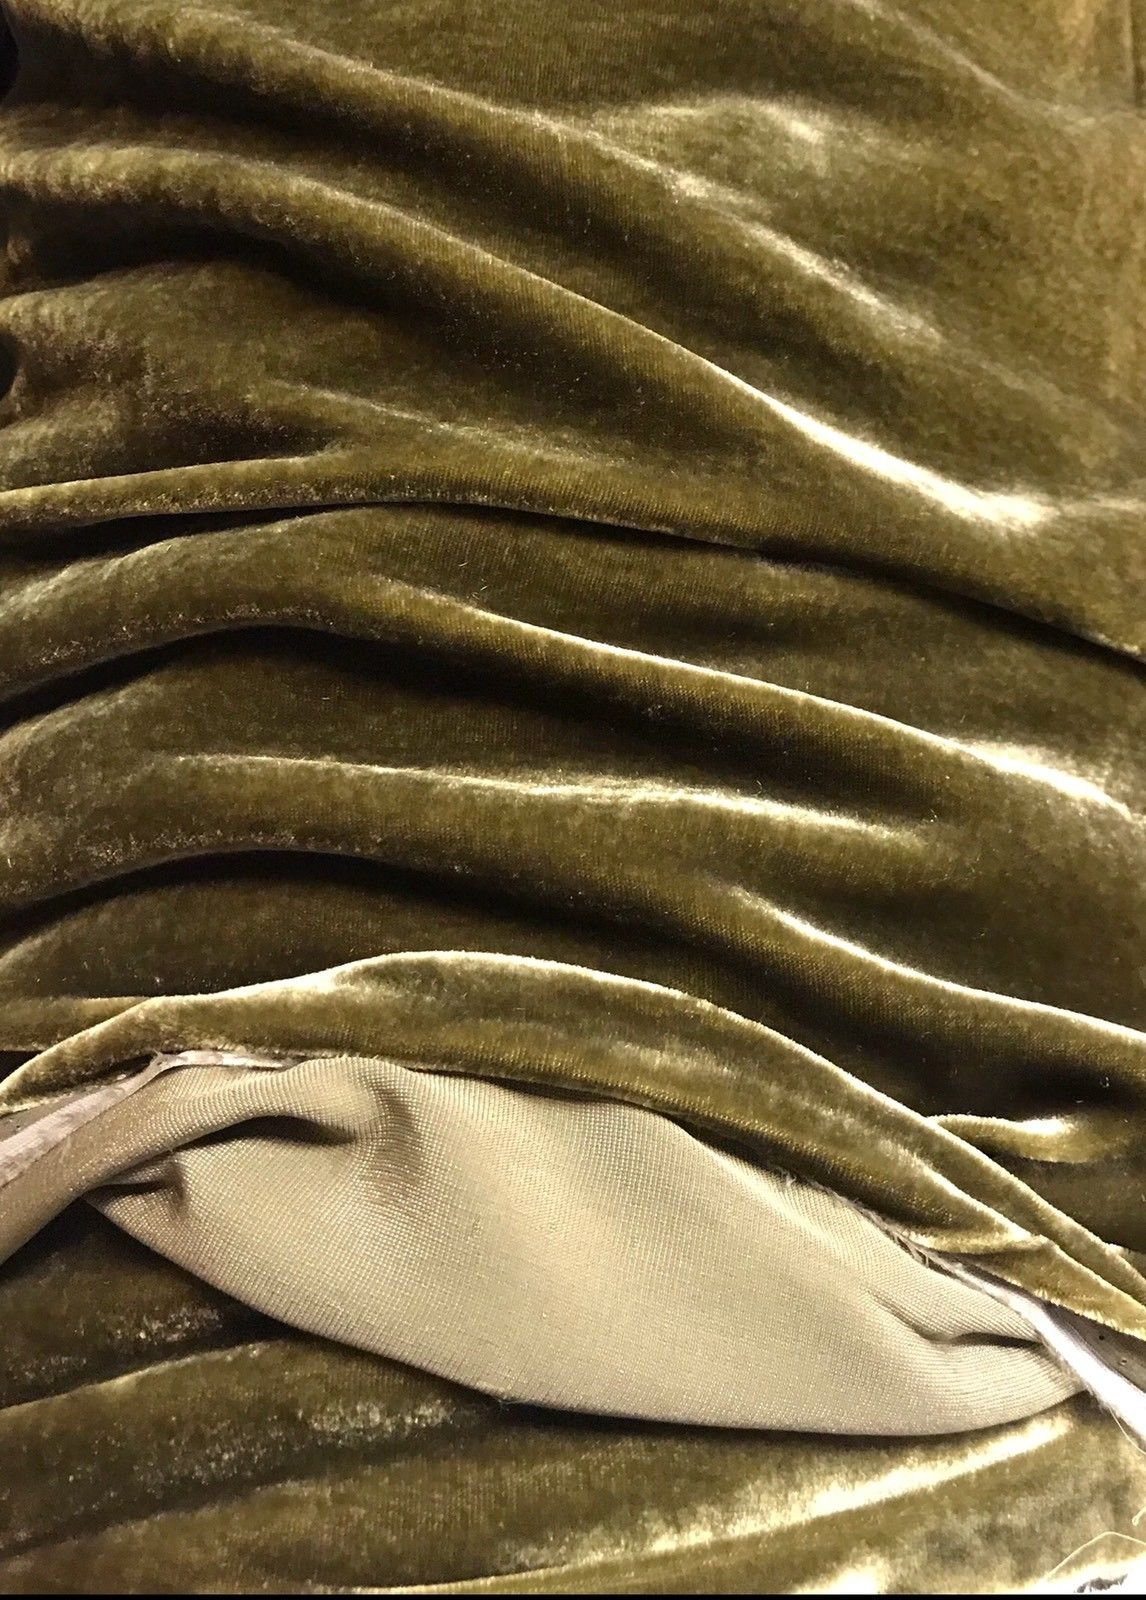 SWATCH - Close-Out Designer Runway Silk Rayon Velvet - Antique Olive Green - Fancy Styles Fabric Boutique